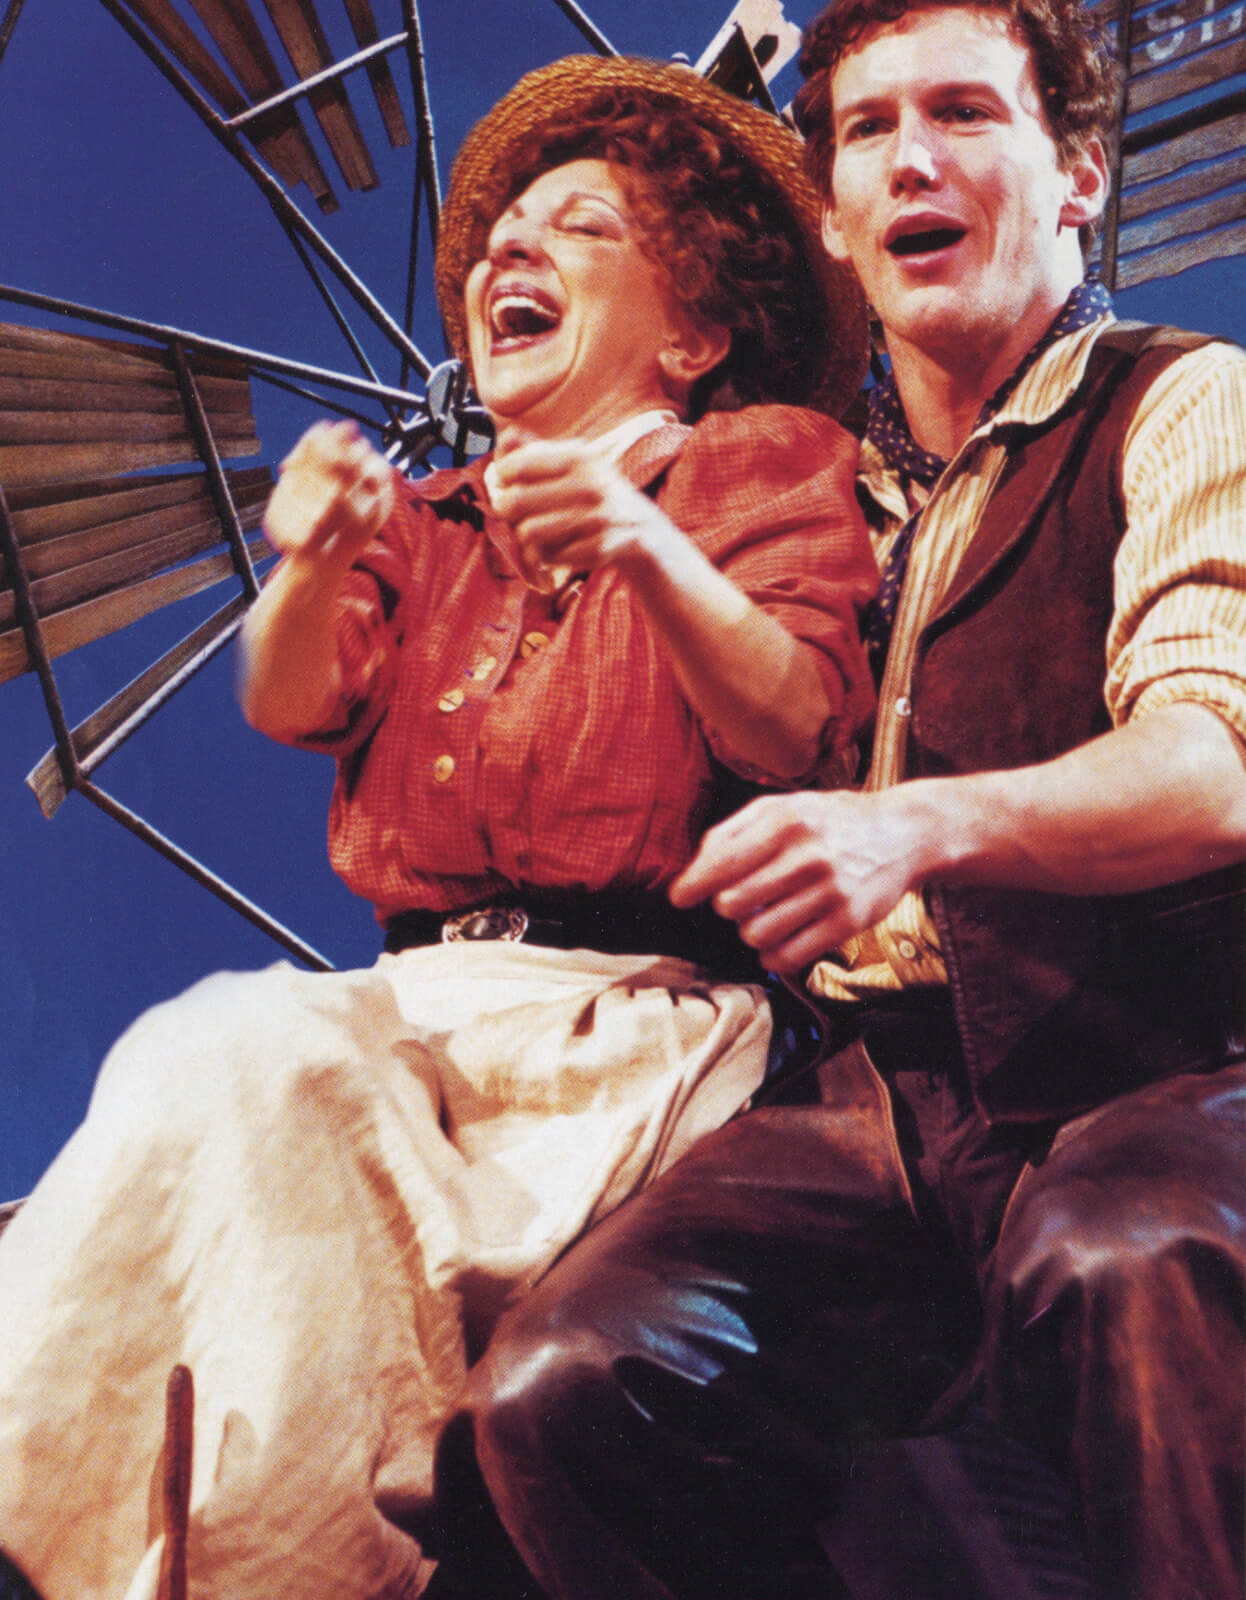 Brunette Aunt Eller (Andrea Martin) wearing a rattan hat, orange top, black belt, and beige linen skirt, with Curly (Patrick Wilson) wearing a yellow striped shirt and matching suede and leather vest and pants, respectively, looking very exhilarated.